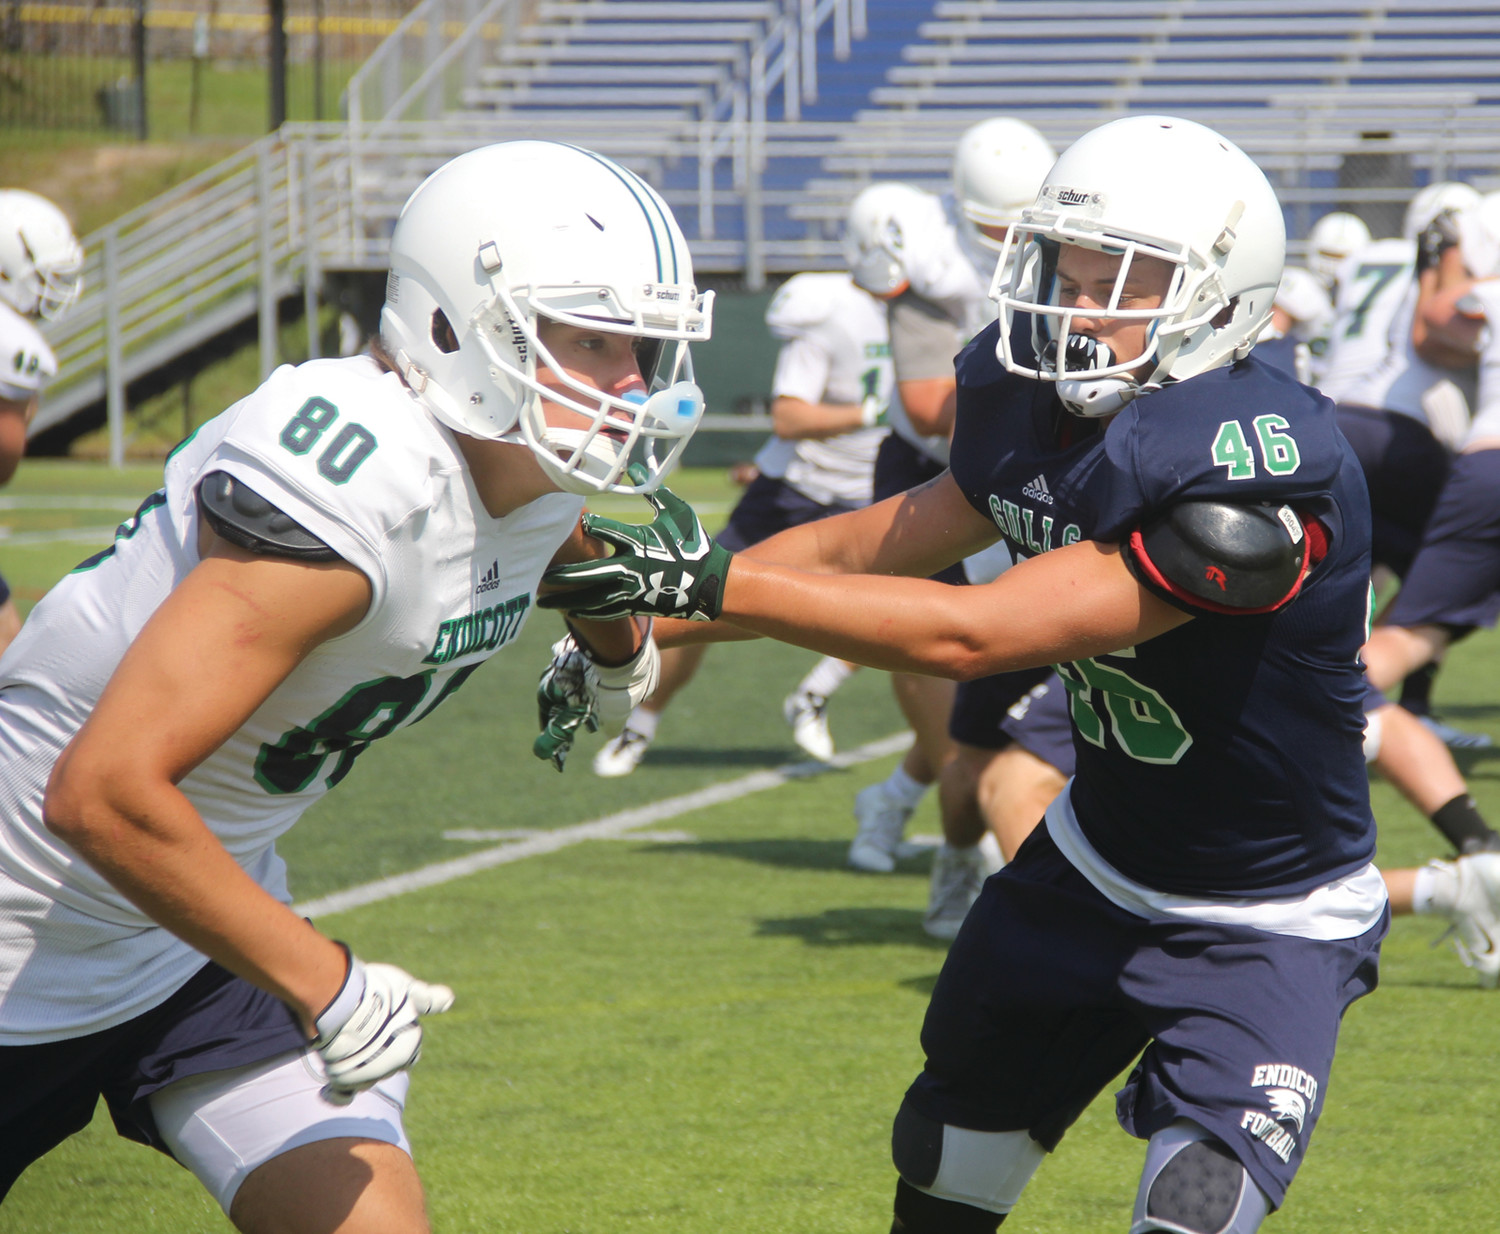 TIGHT COVERAGE: Warwick native and Endicott defensive back  Josh Morin covers a receiver during a training camp practice this summer.